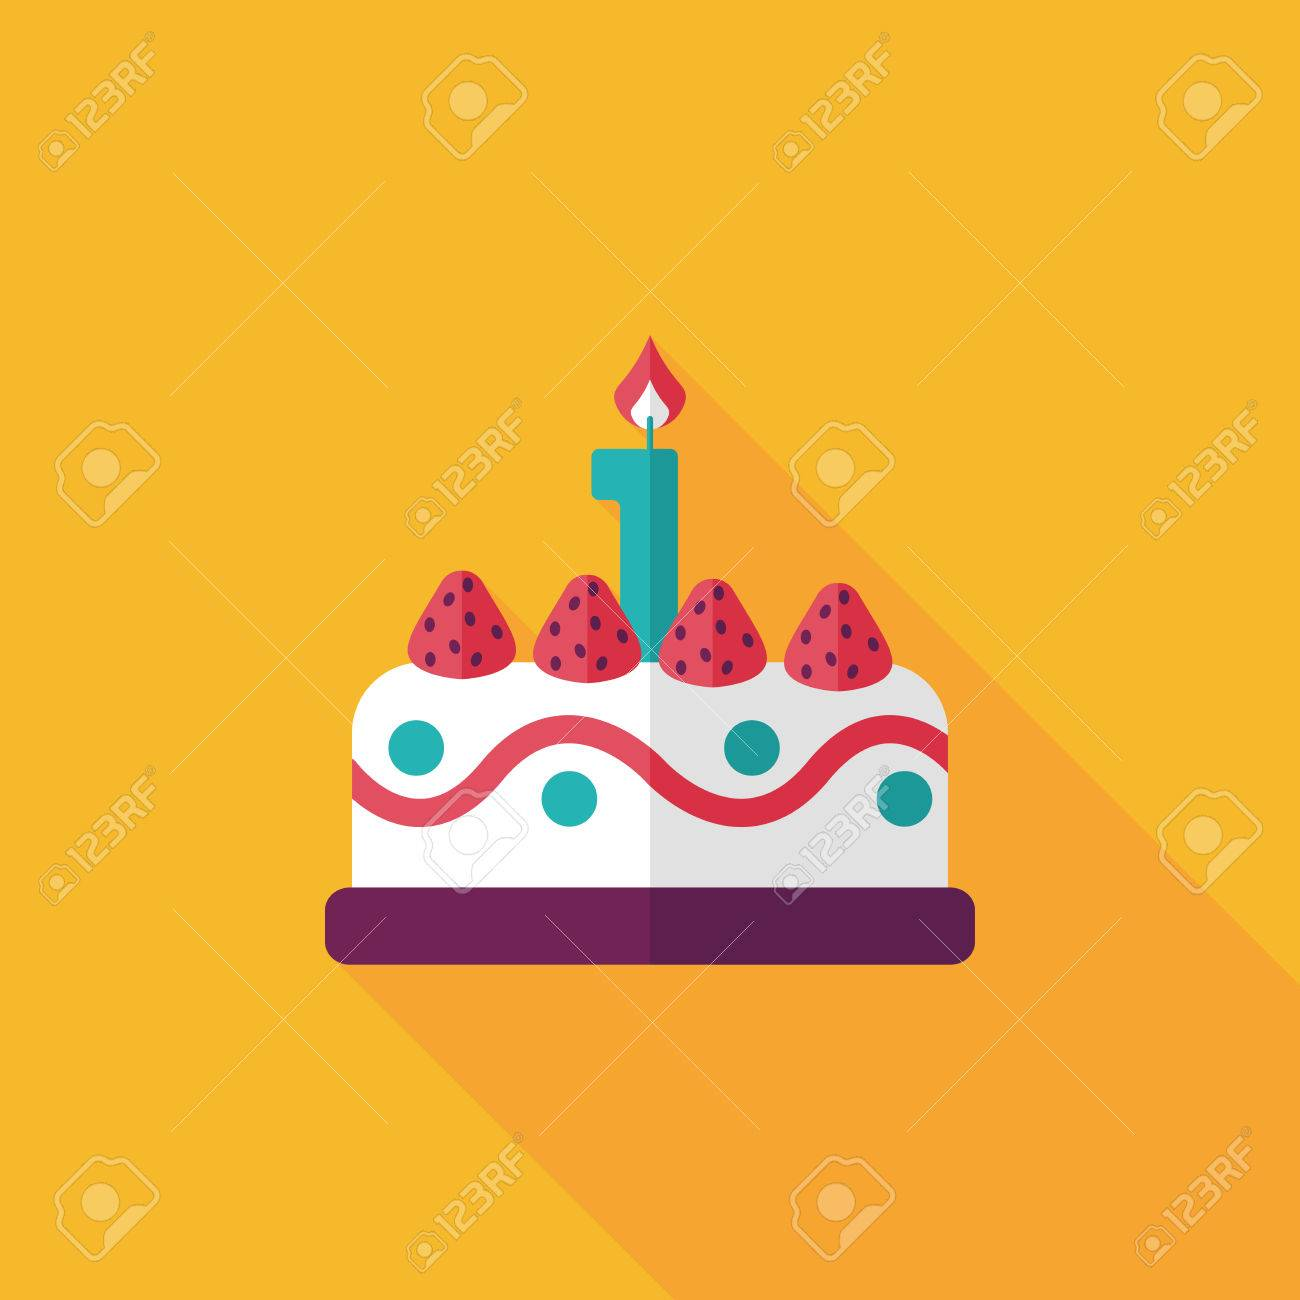 birthday cake flat icon with long shadow,eps10 - 31698495